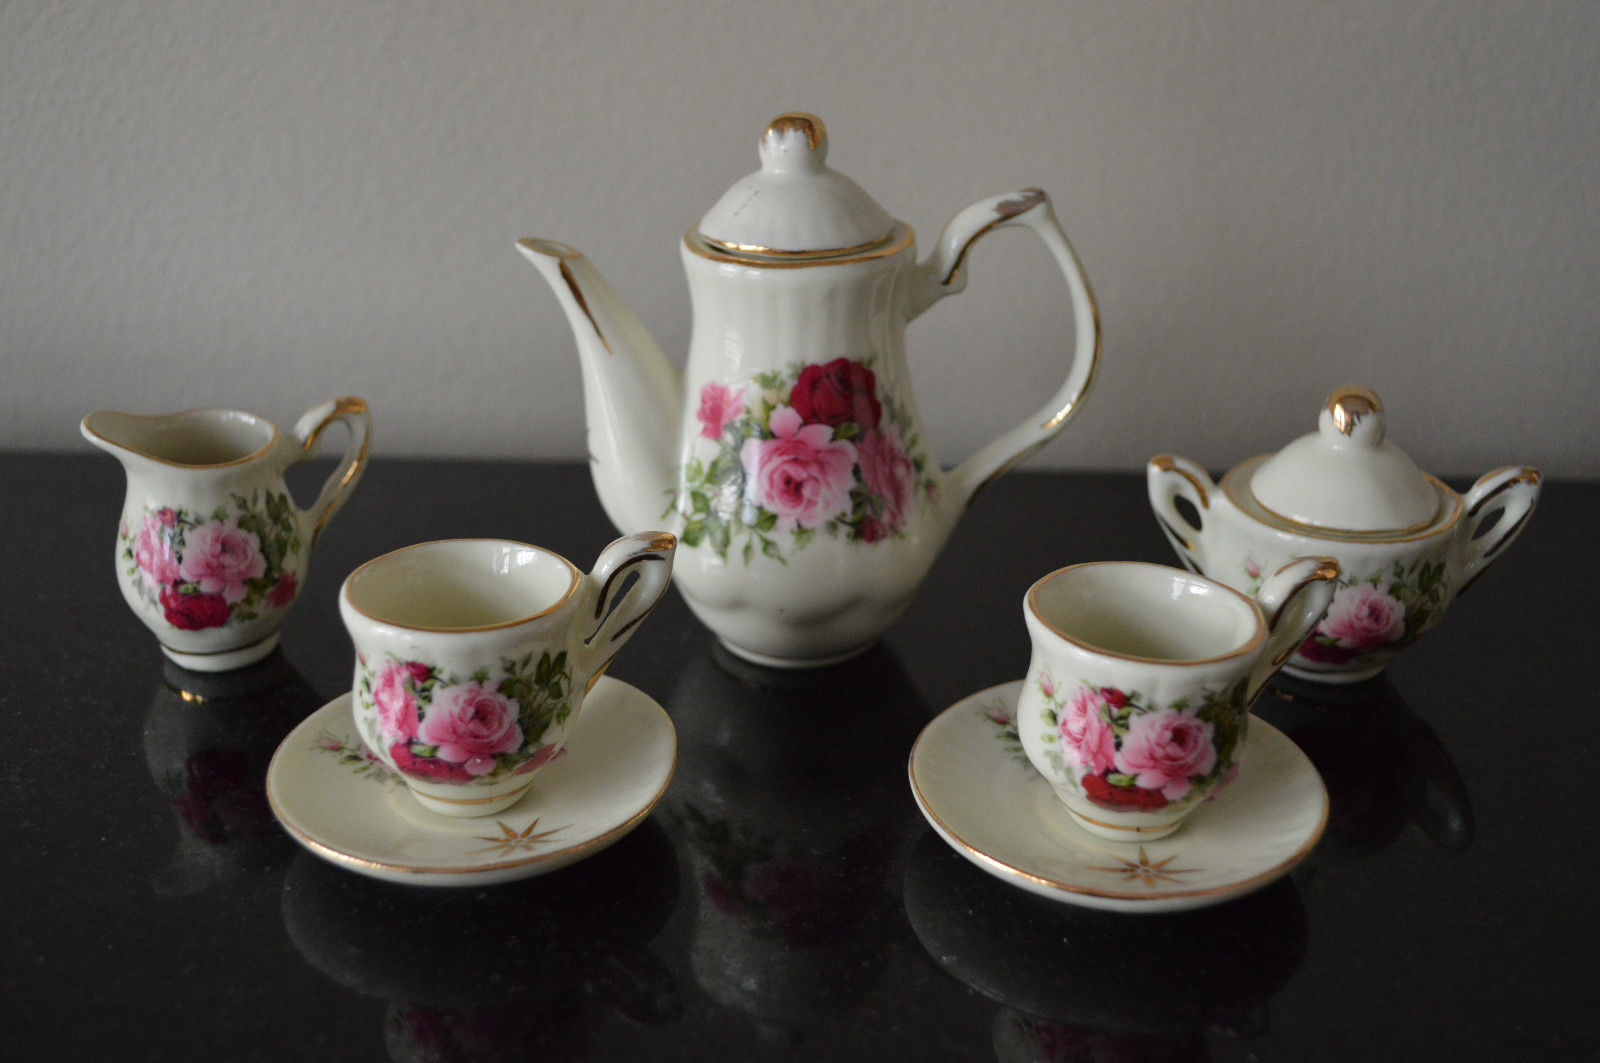 Formalities By Baum Bros Miniature Tea Set and 50 similar items